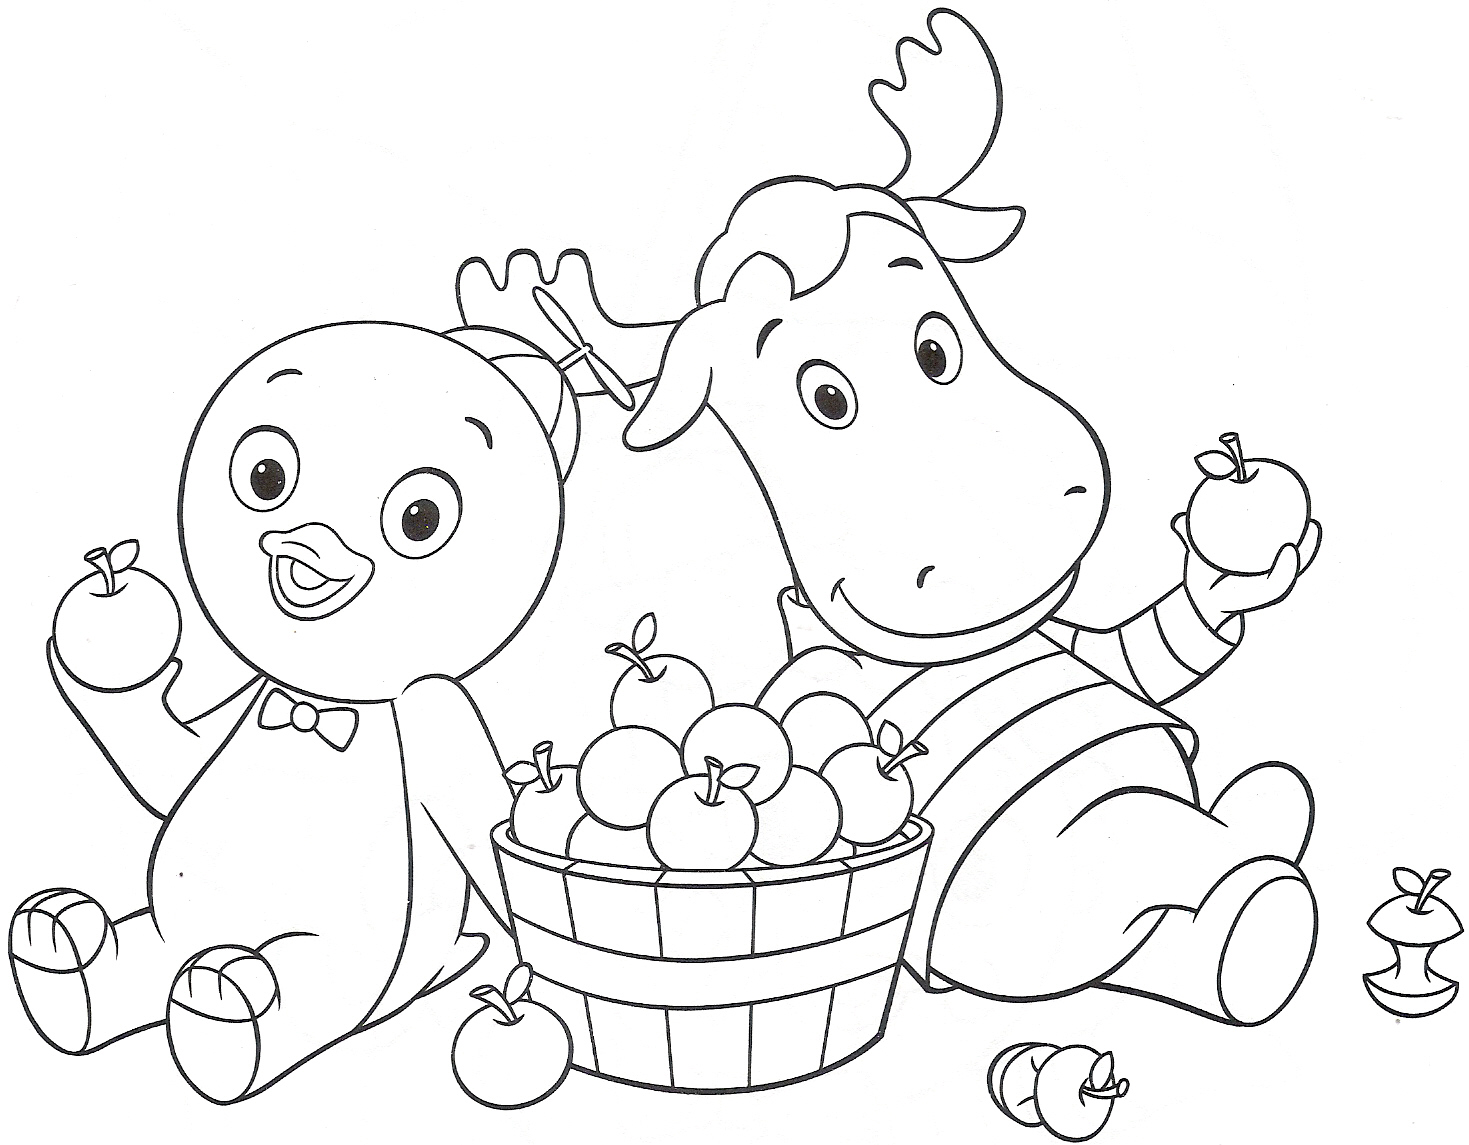 backyardagins printable coloring pages - photo#7